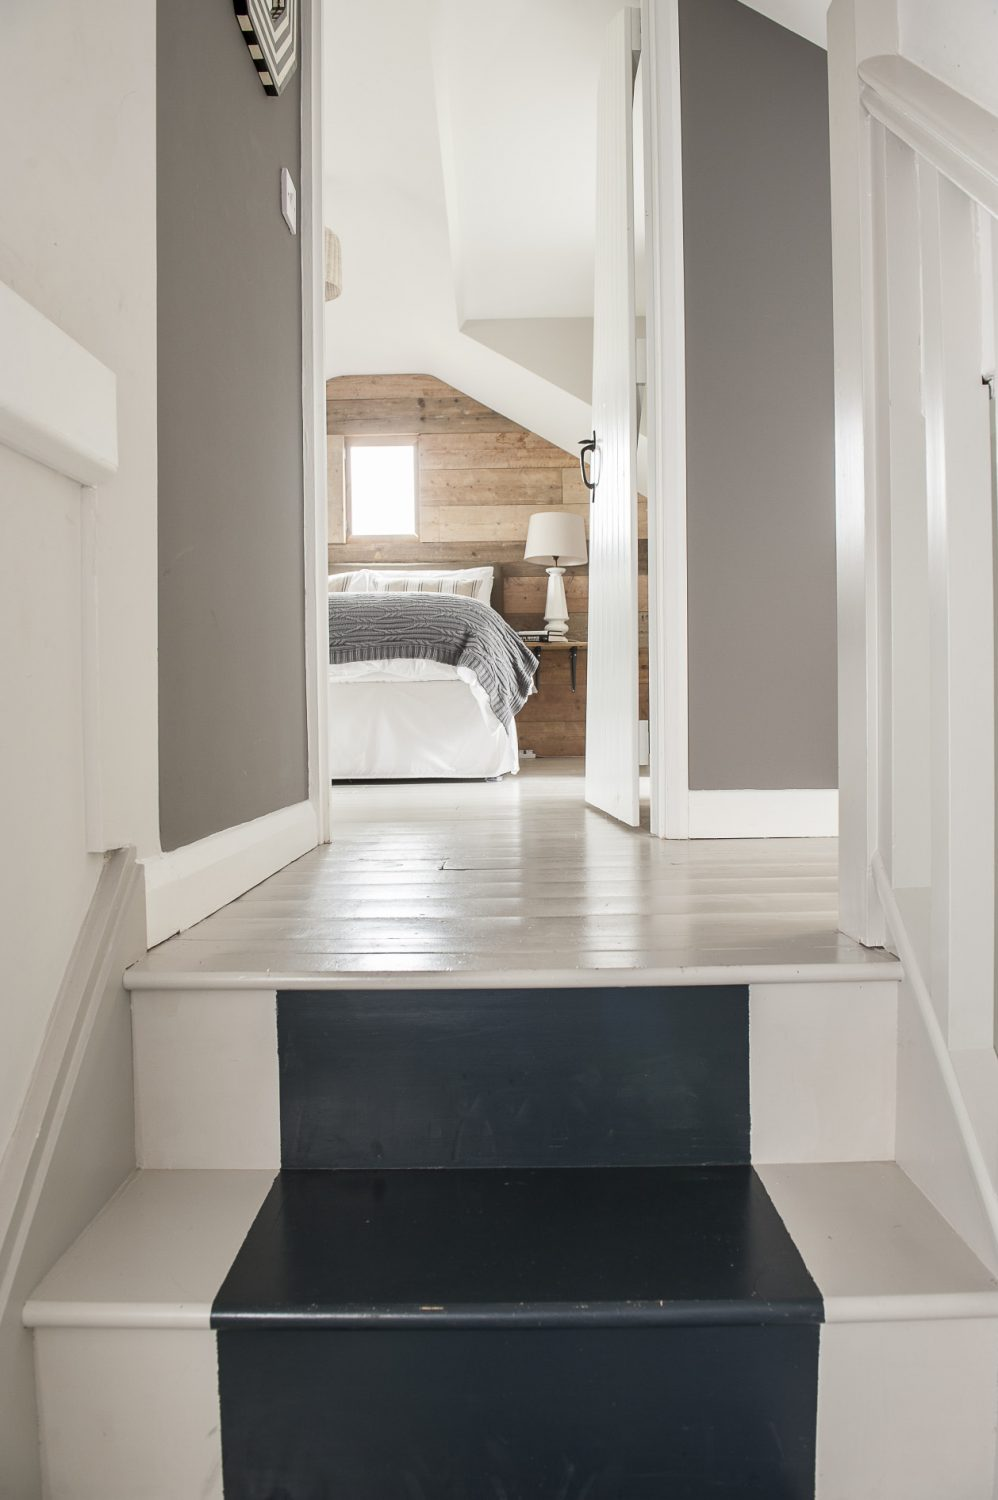 Stairs painted in Purbeck Stone with runner in Railings lead up to the vaulted master bedroom with a view to the sea